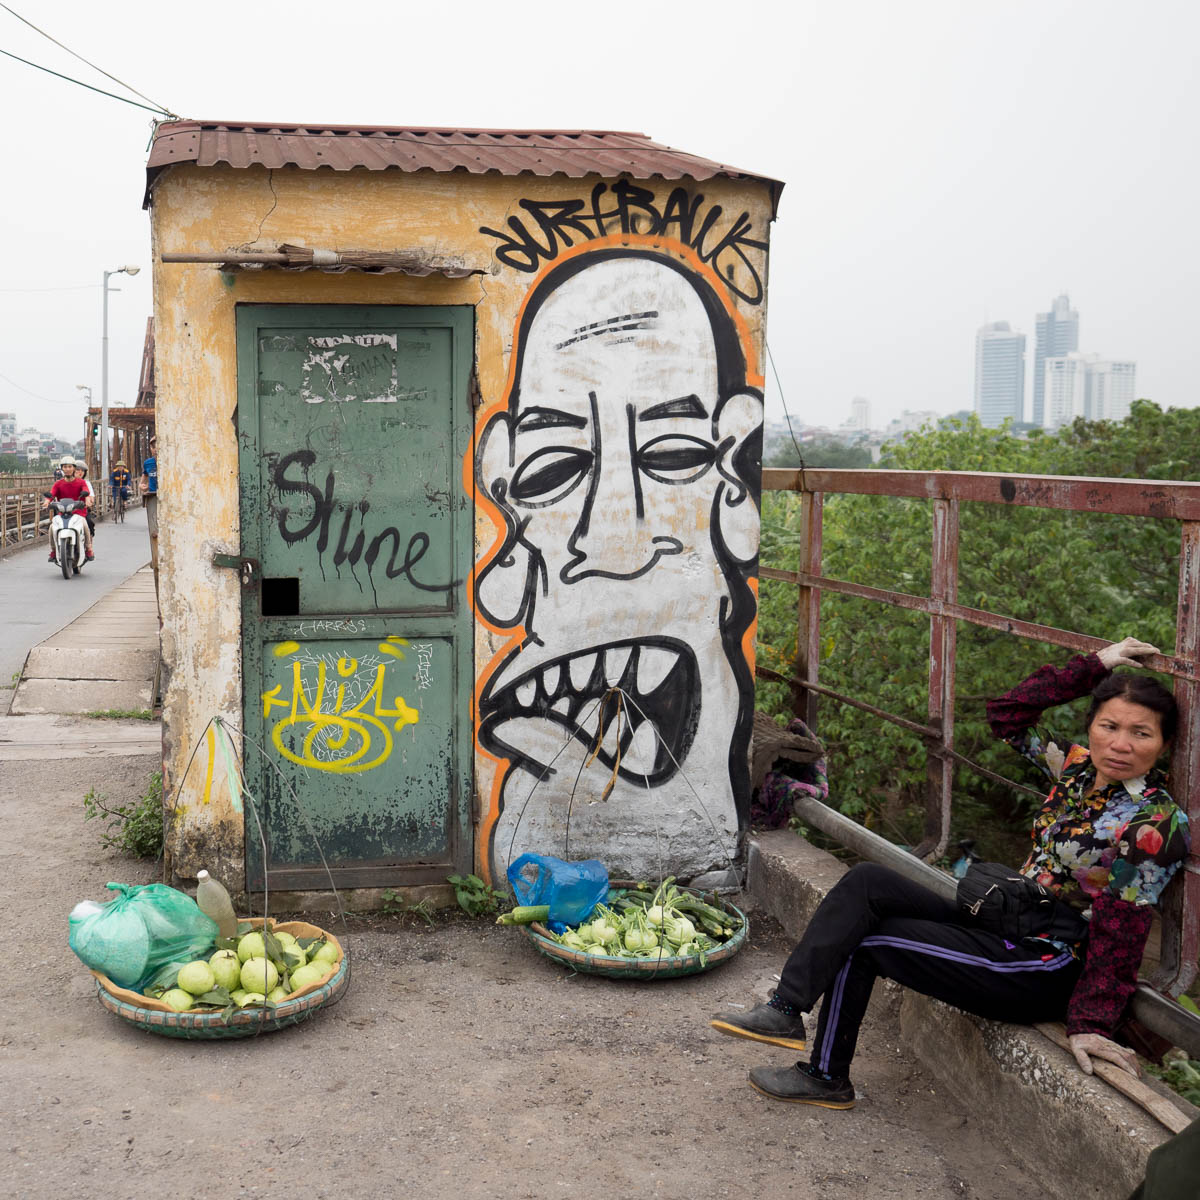 Reise durch Asien 2019 #12 Graffiti in Hanoi